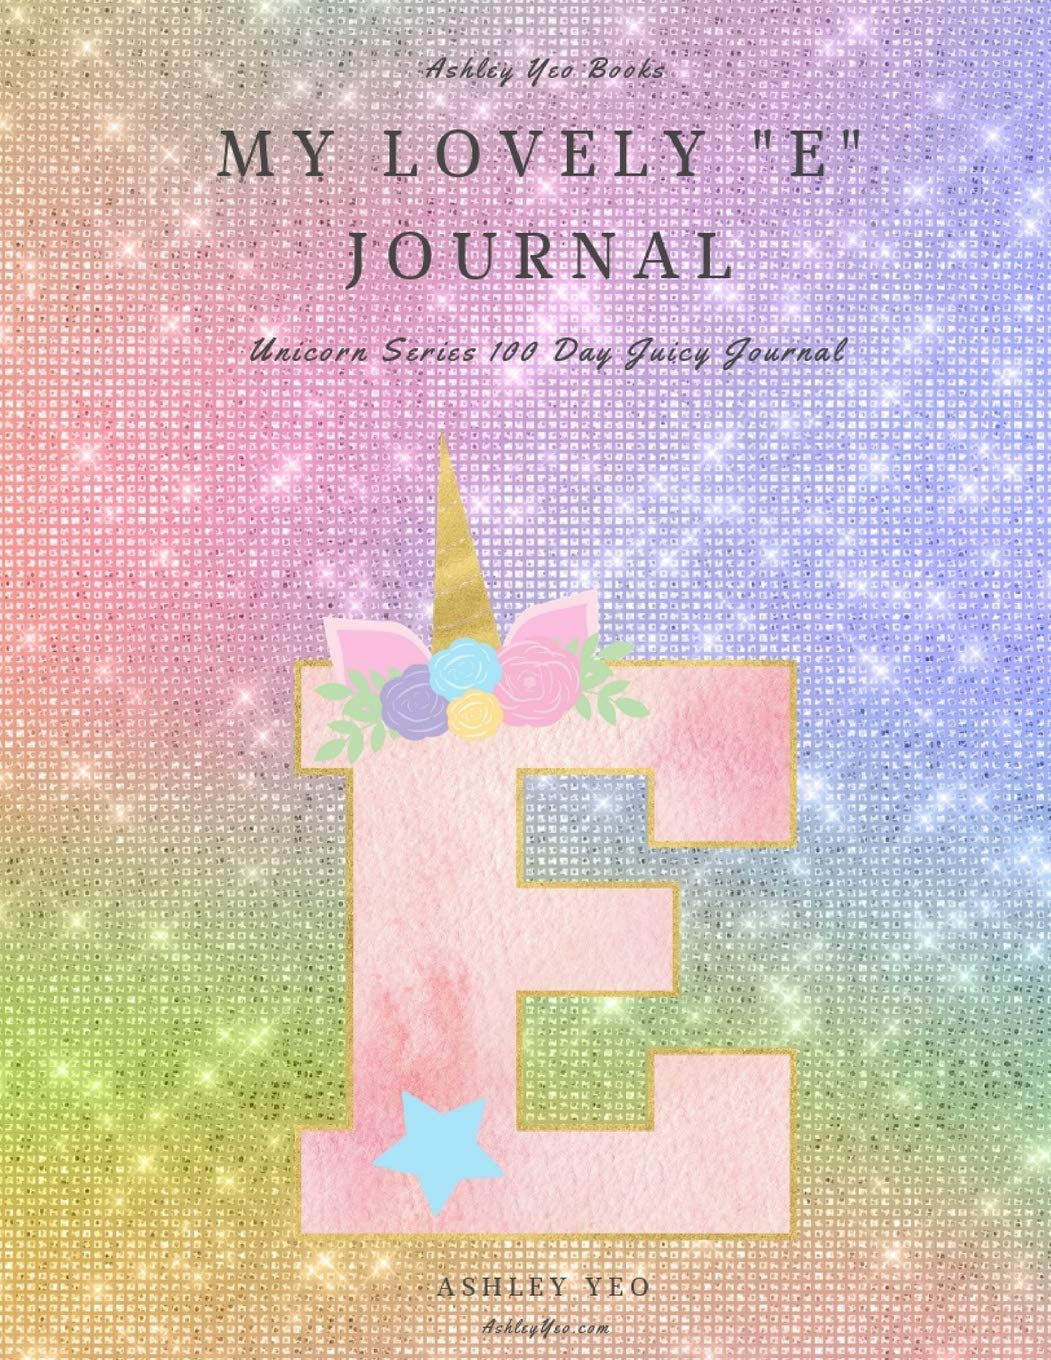 """My Lovely """"E"""" Journal: Unicorn Series 100 Day Juicy Journal"""